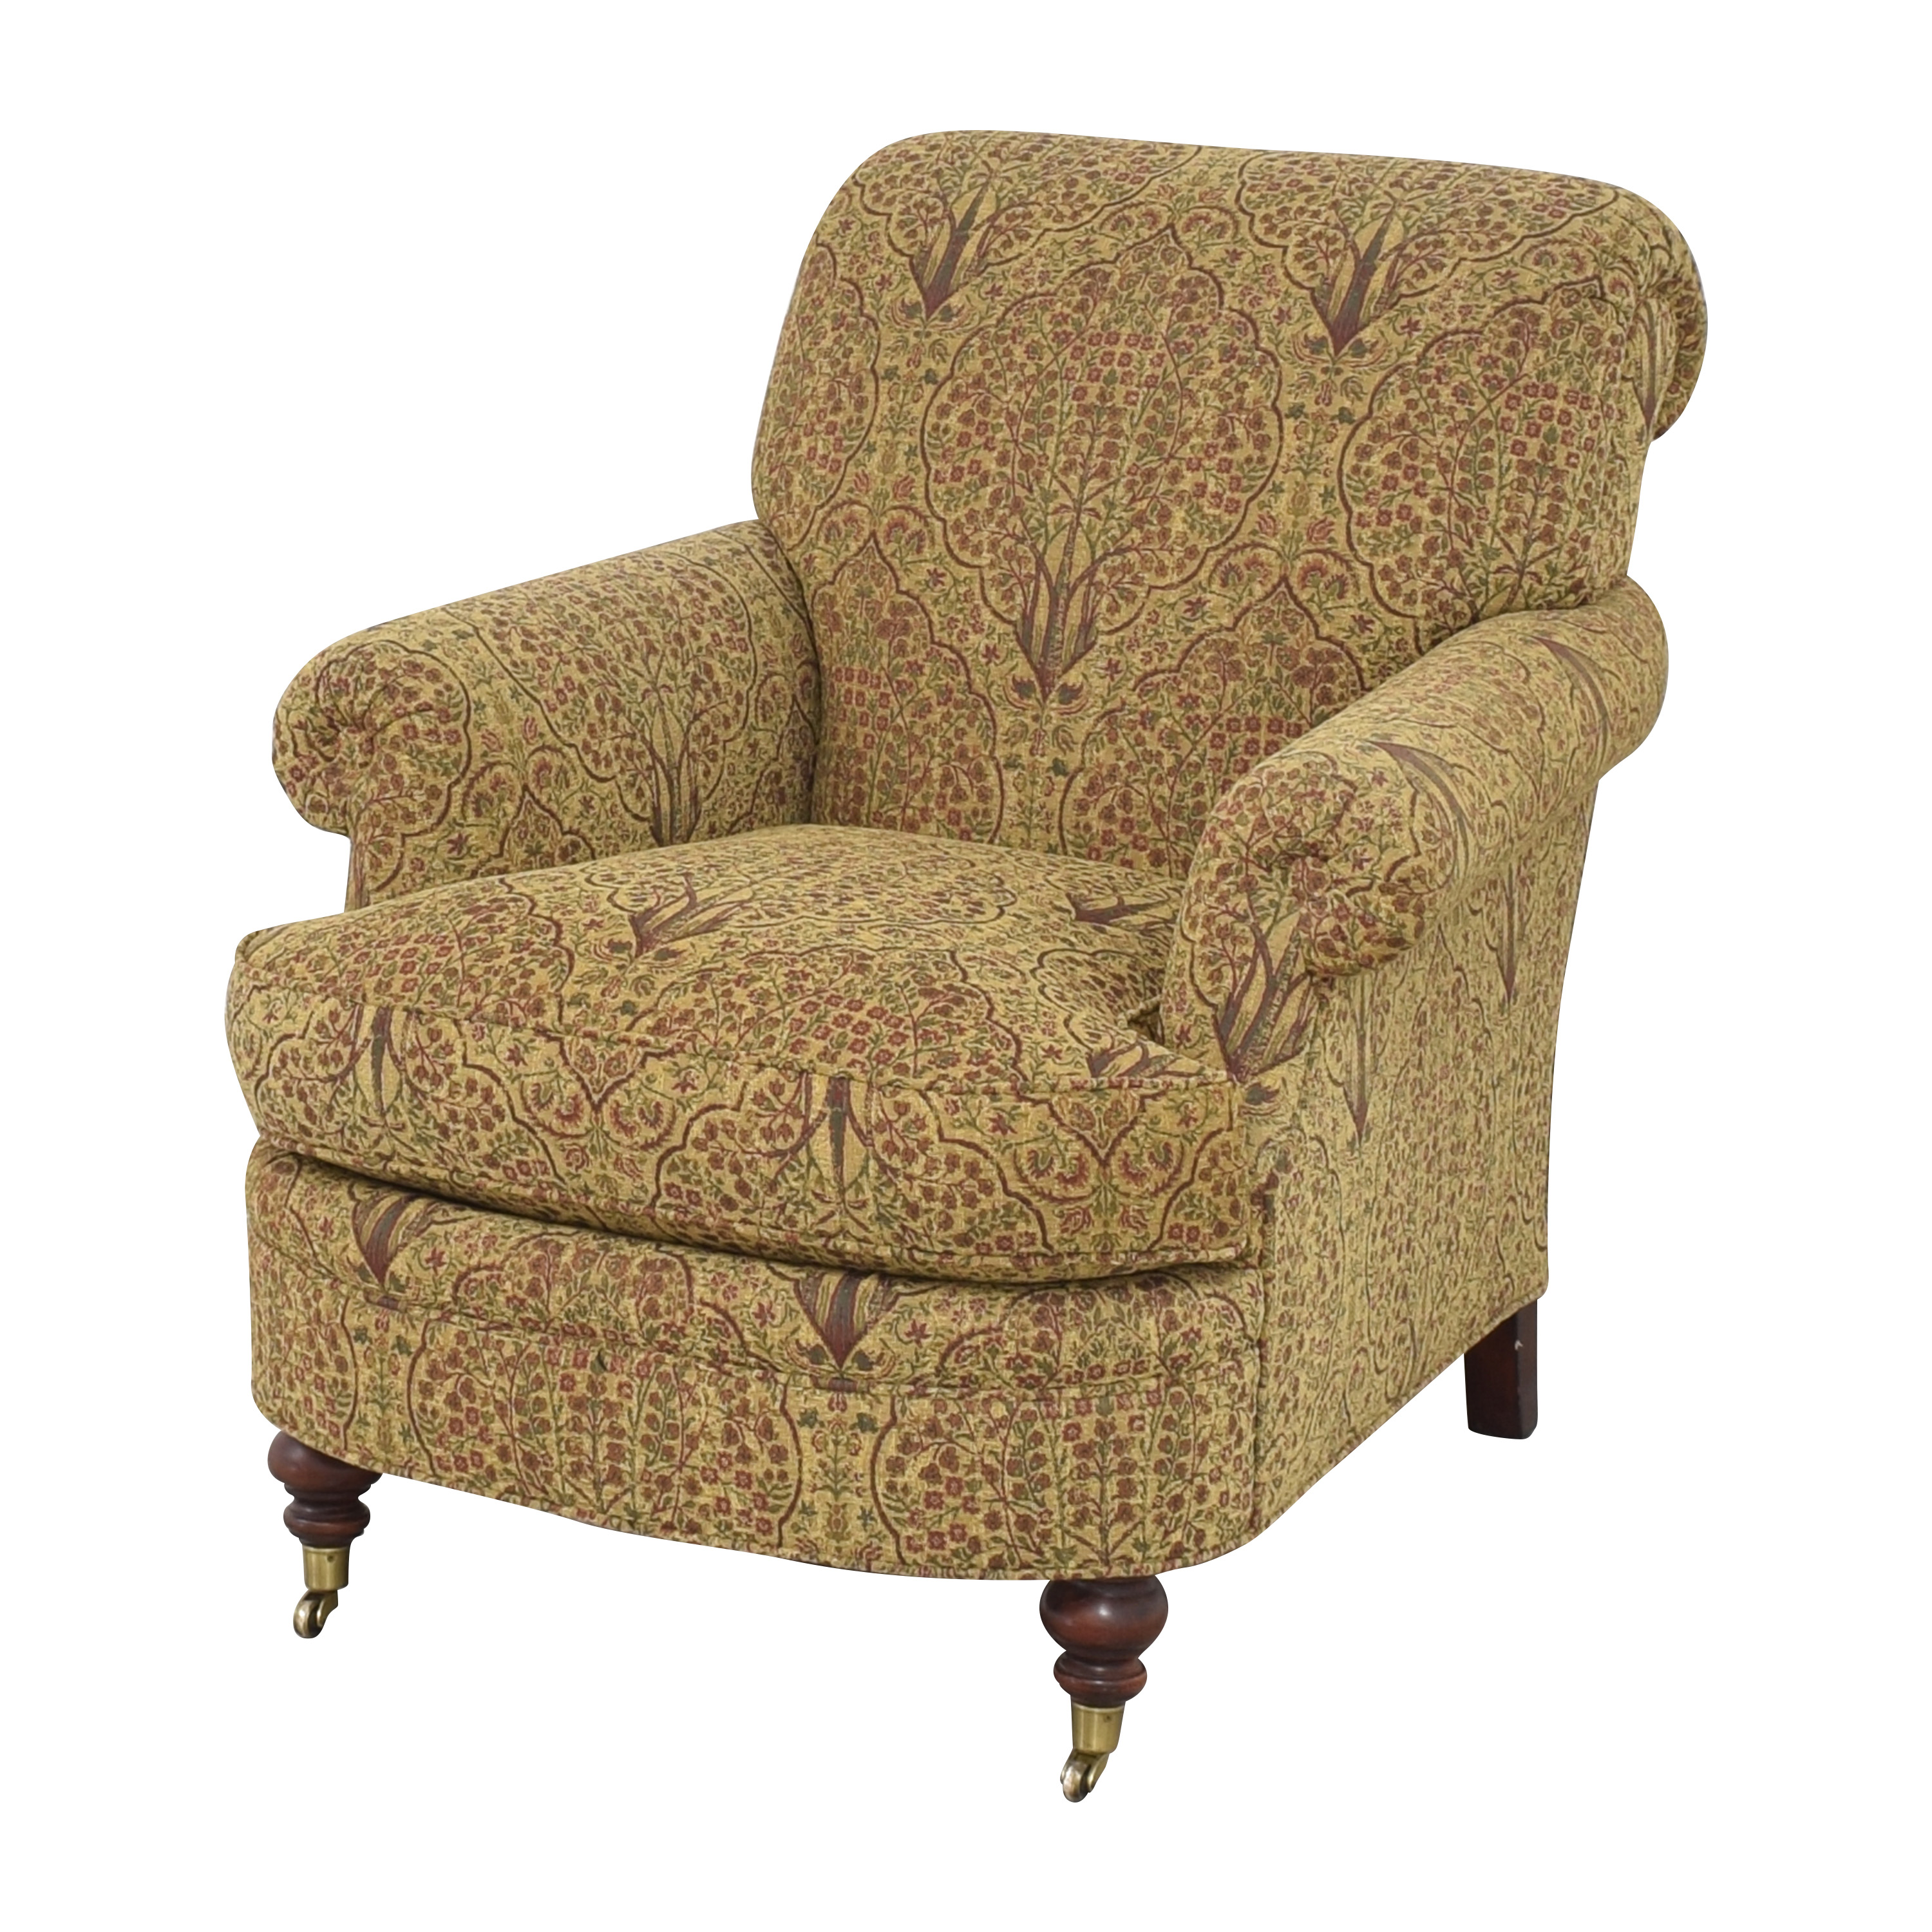 buy Lewis Mittman Roll Arm Accent Chair Lewis Mittman Chairs